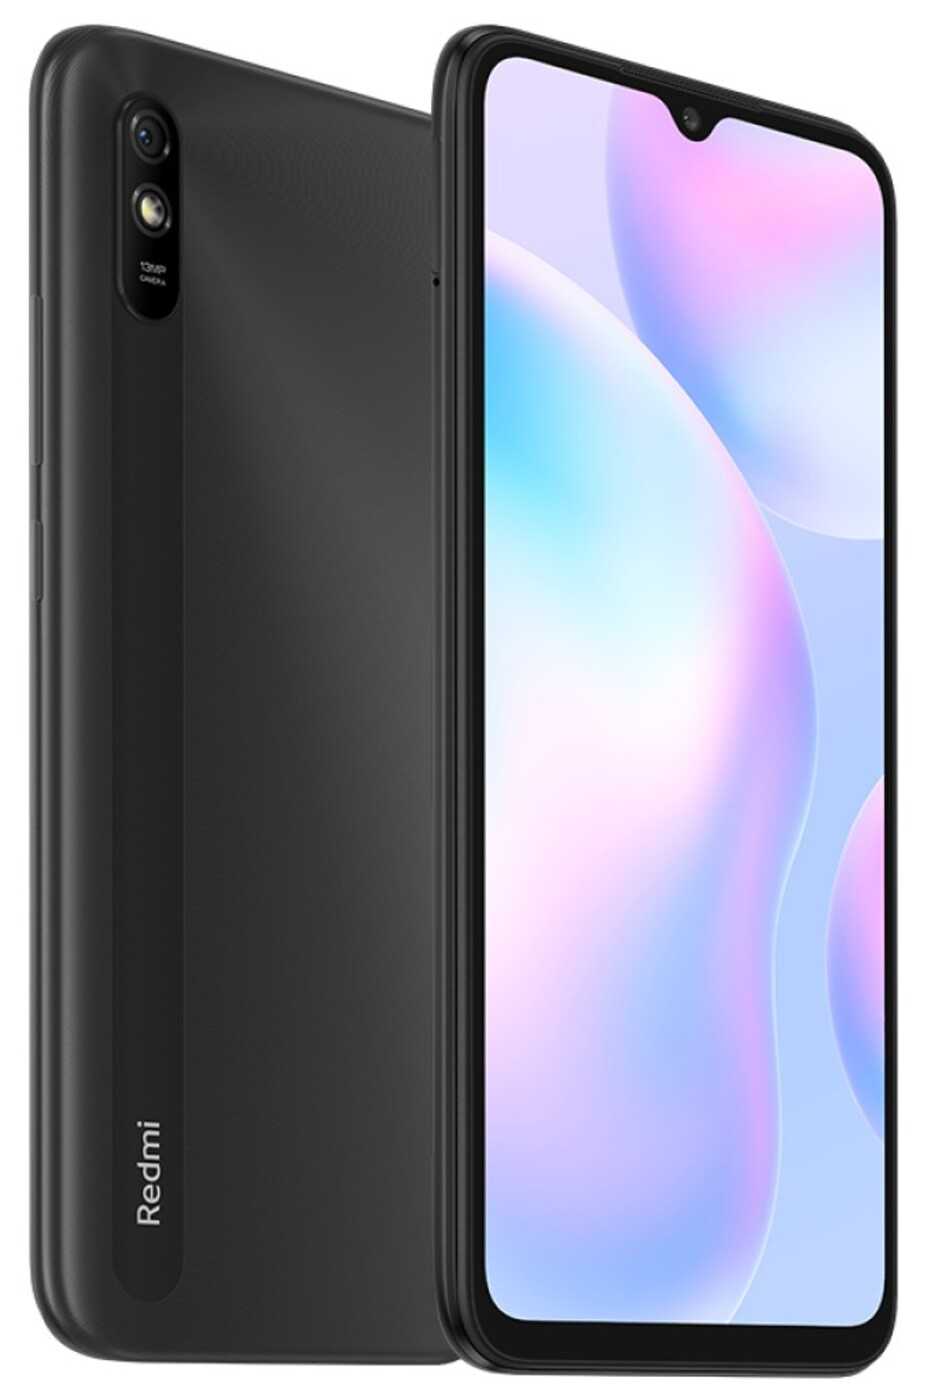 Smartphone Xiaomi redmi 9A 2GB Ram Tela 6.53 32GB Camera de 13MP - Preto